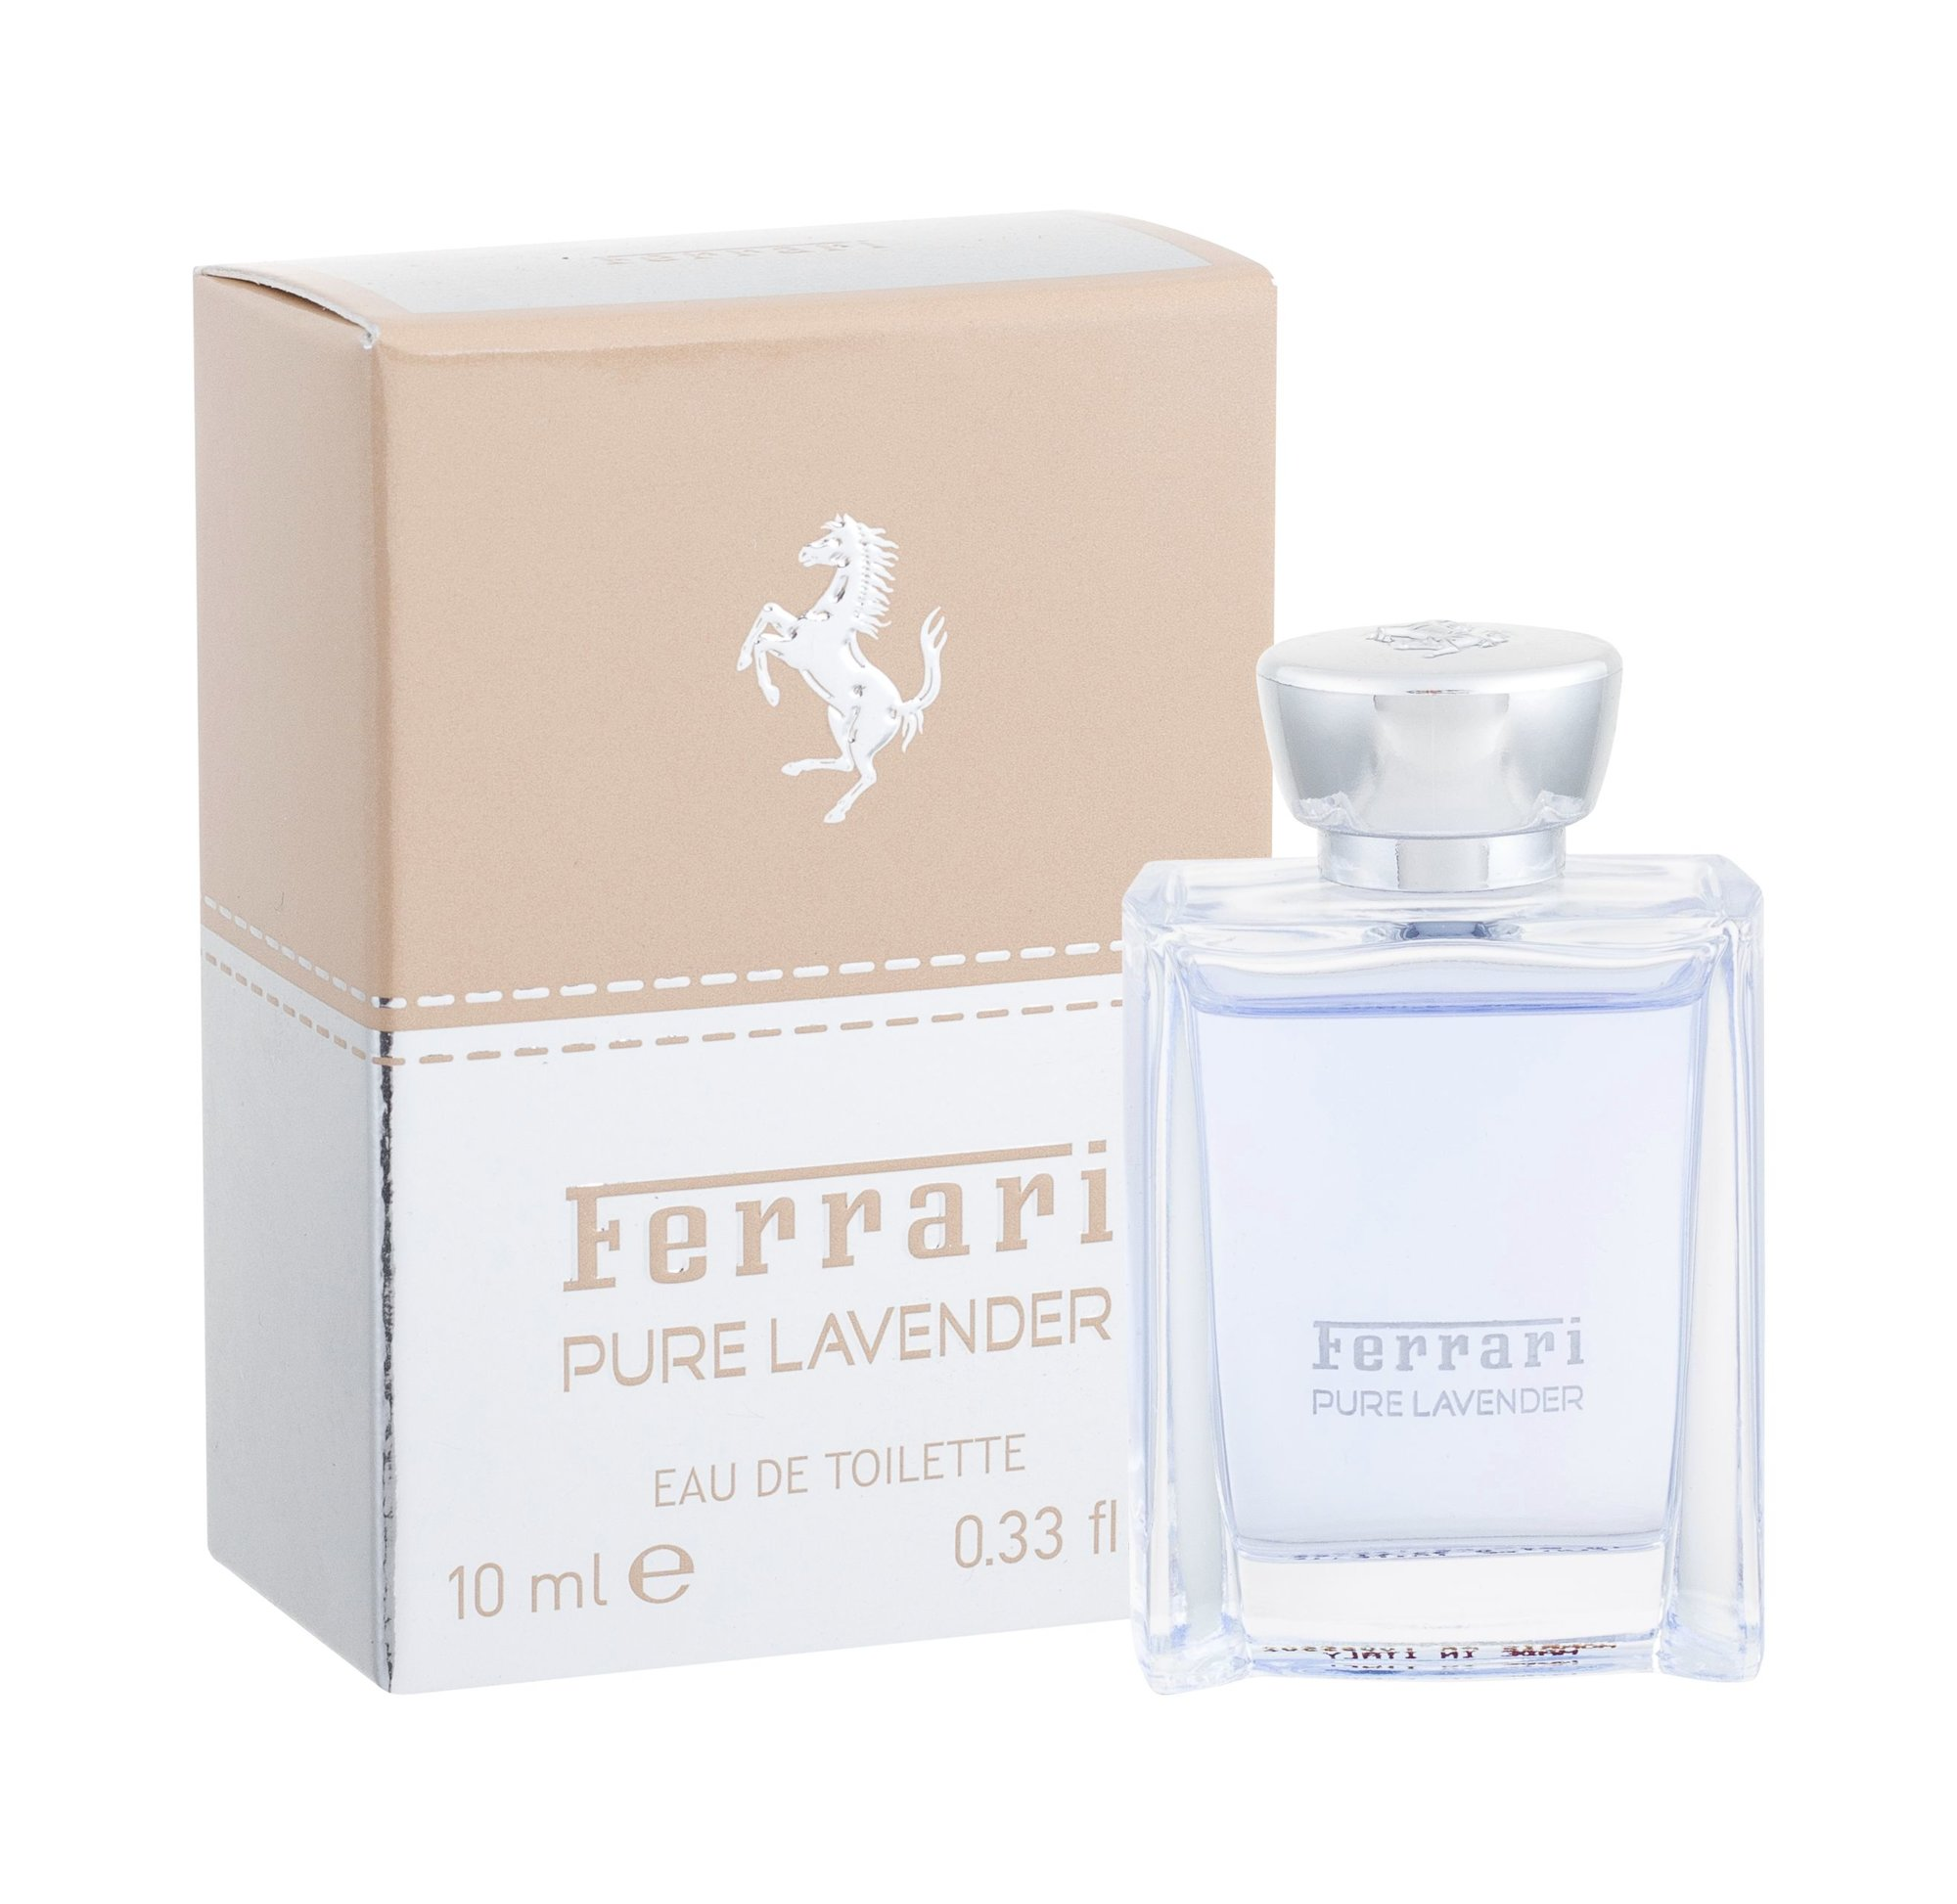 Ferrari Pure Lavender, edt 10ml